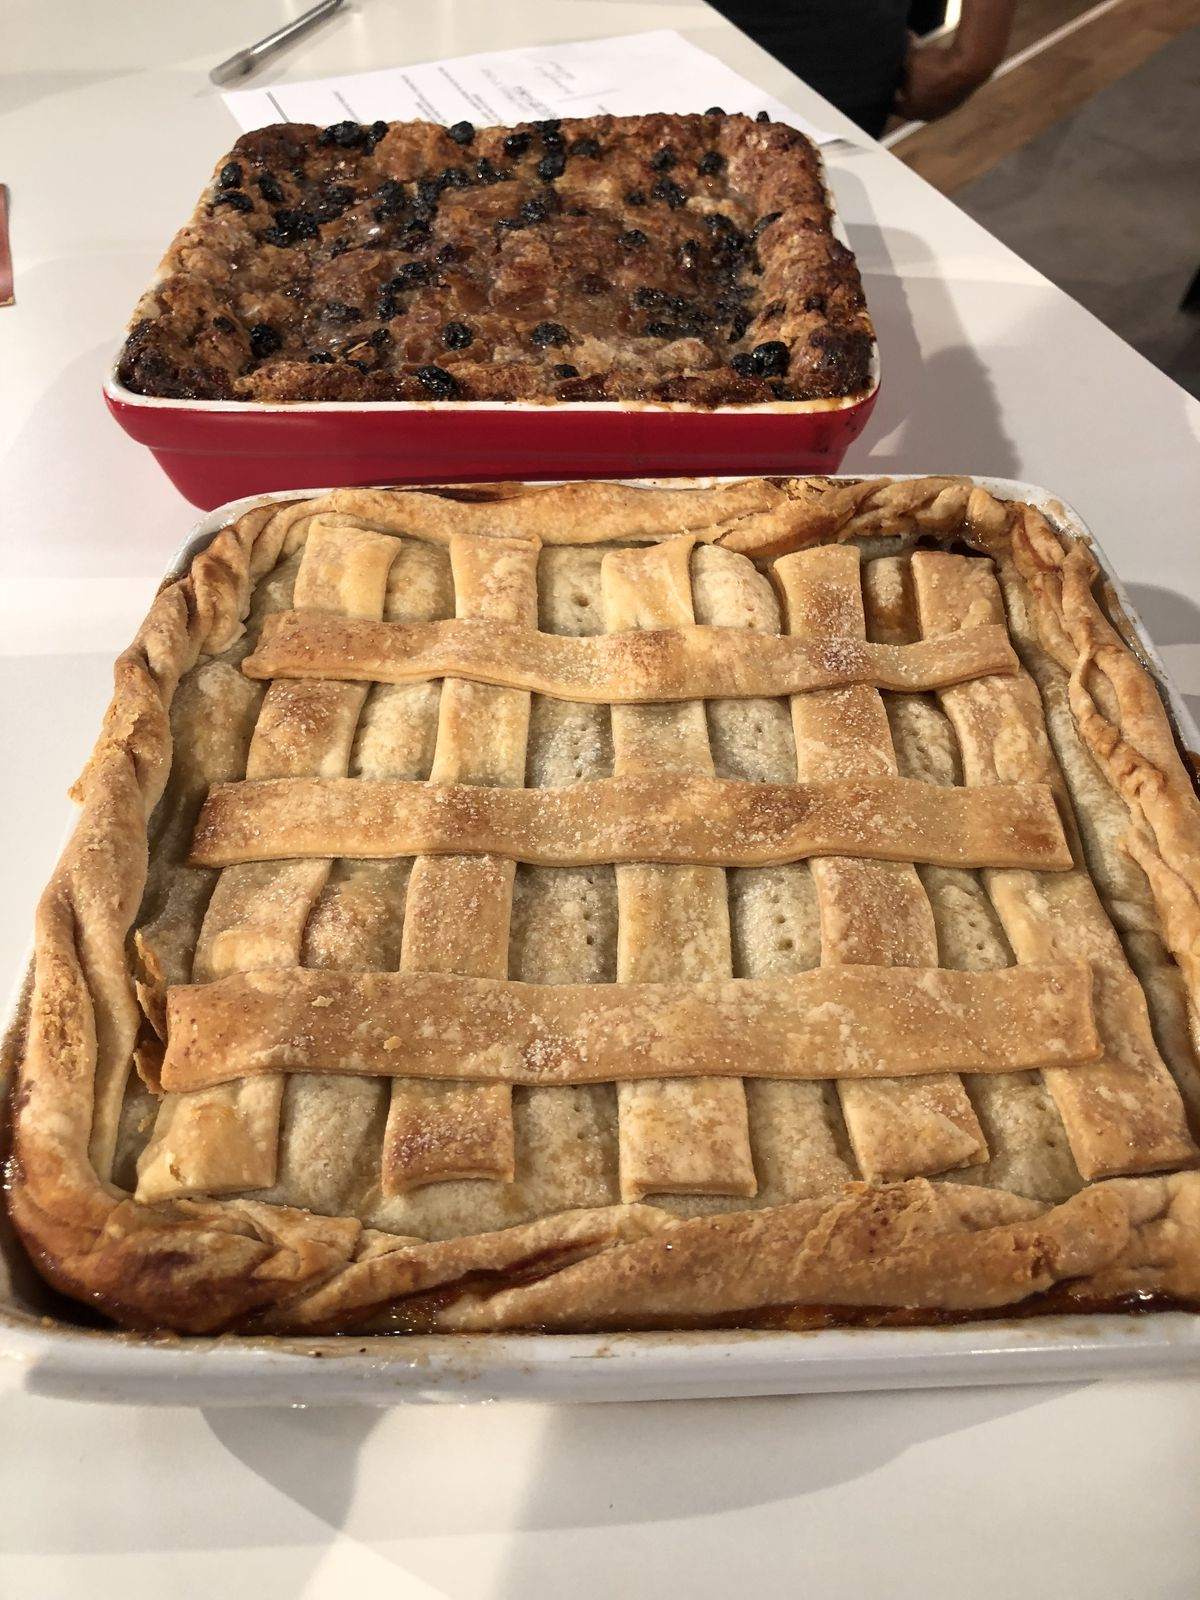 Classic Cobbler will be among the pop-ups at this year's Taste of Chicago, serving up a variety of their fruit-filled specialties.